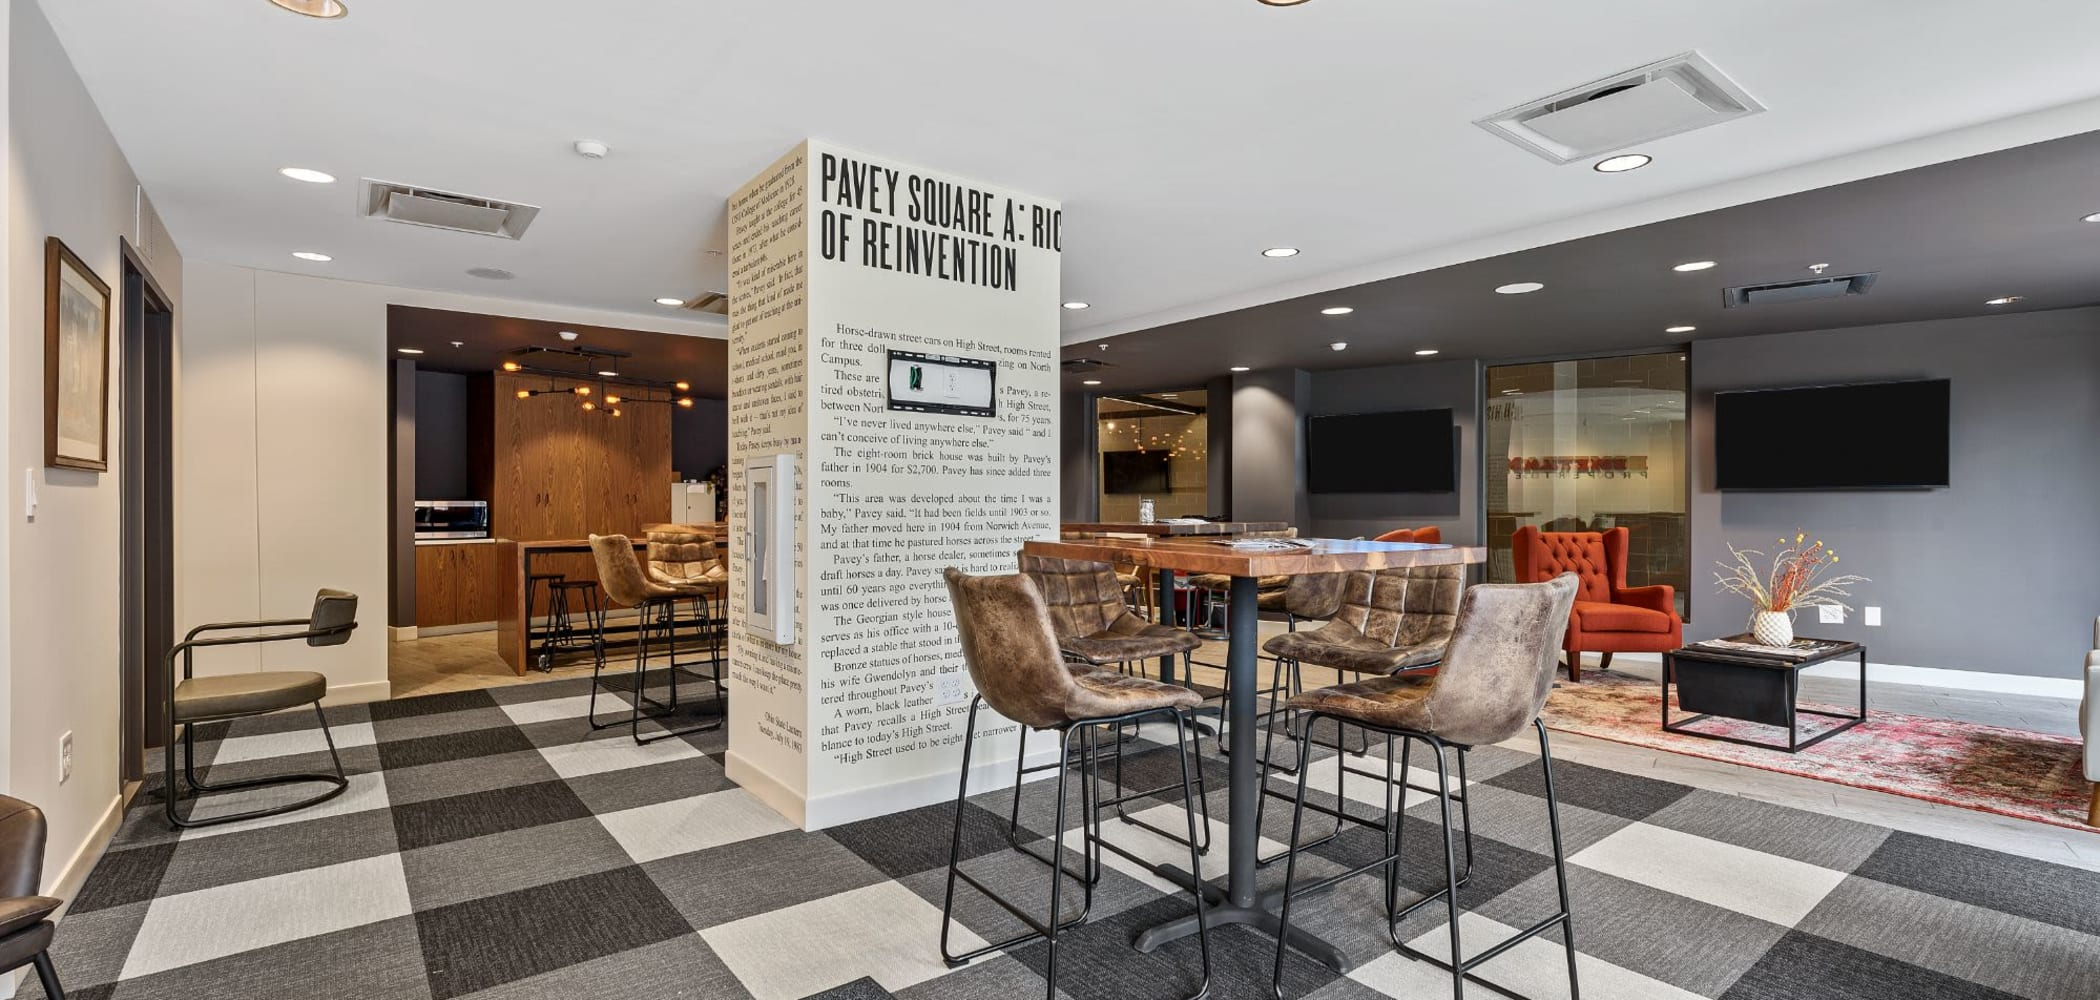 Cool rustic style area to hang out in with a tv at The View on Pavey Square in Columbus, Ohio